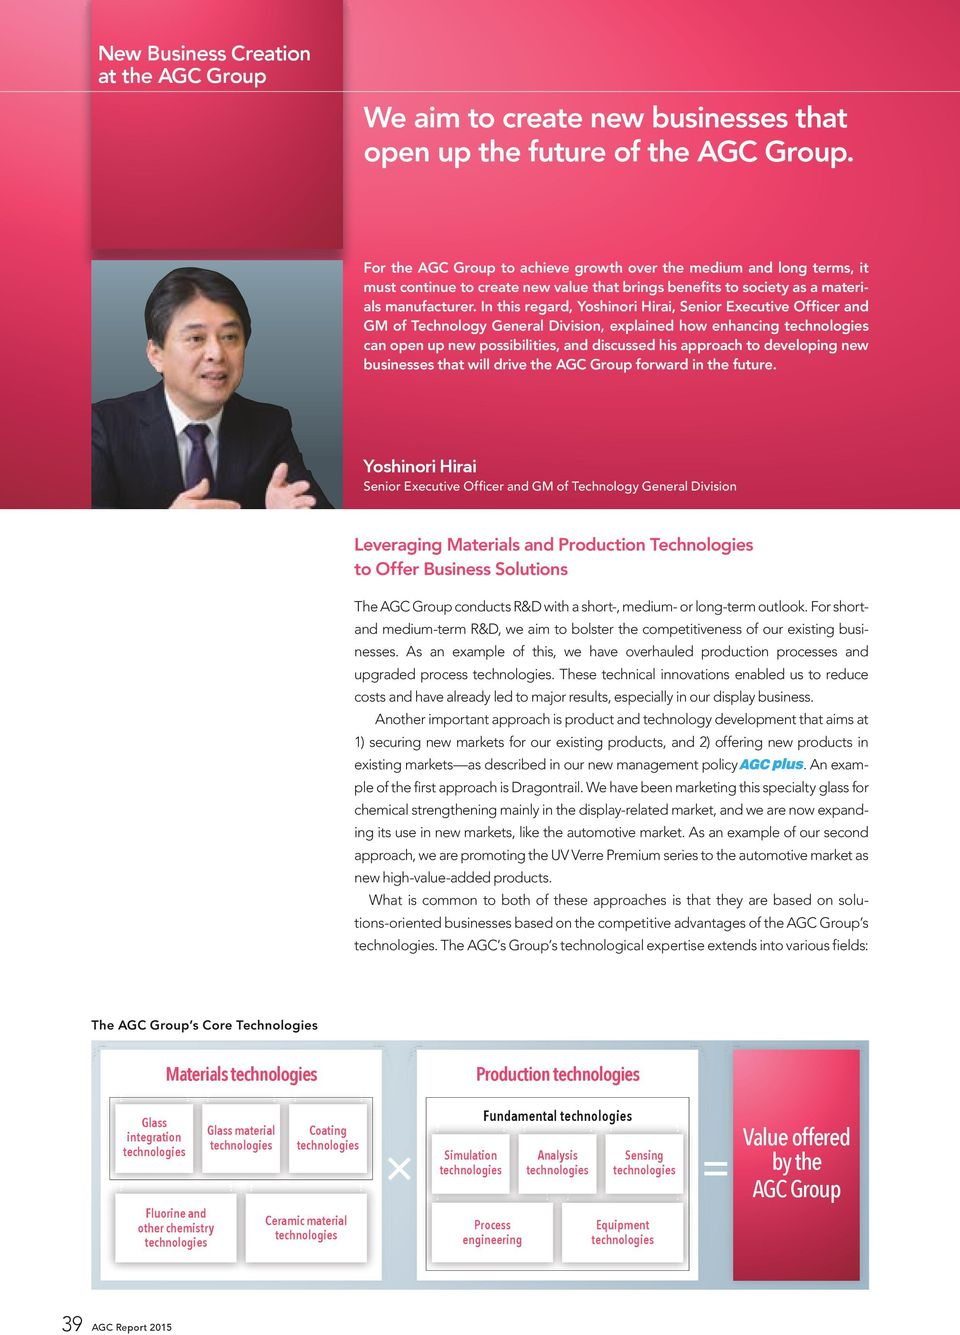 In this regard, Yoshinori Hirai, Senior Executive Officer and GM of Technology General Division, explained how enhancing can open up new possibilities, and discussed his approach to developing new